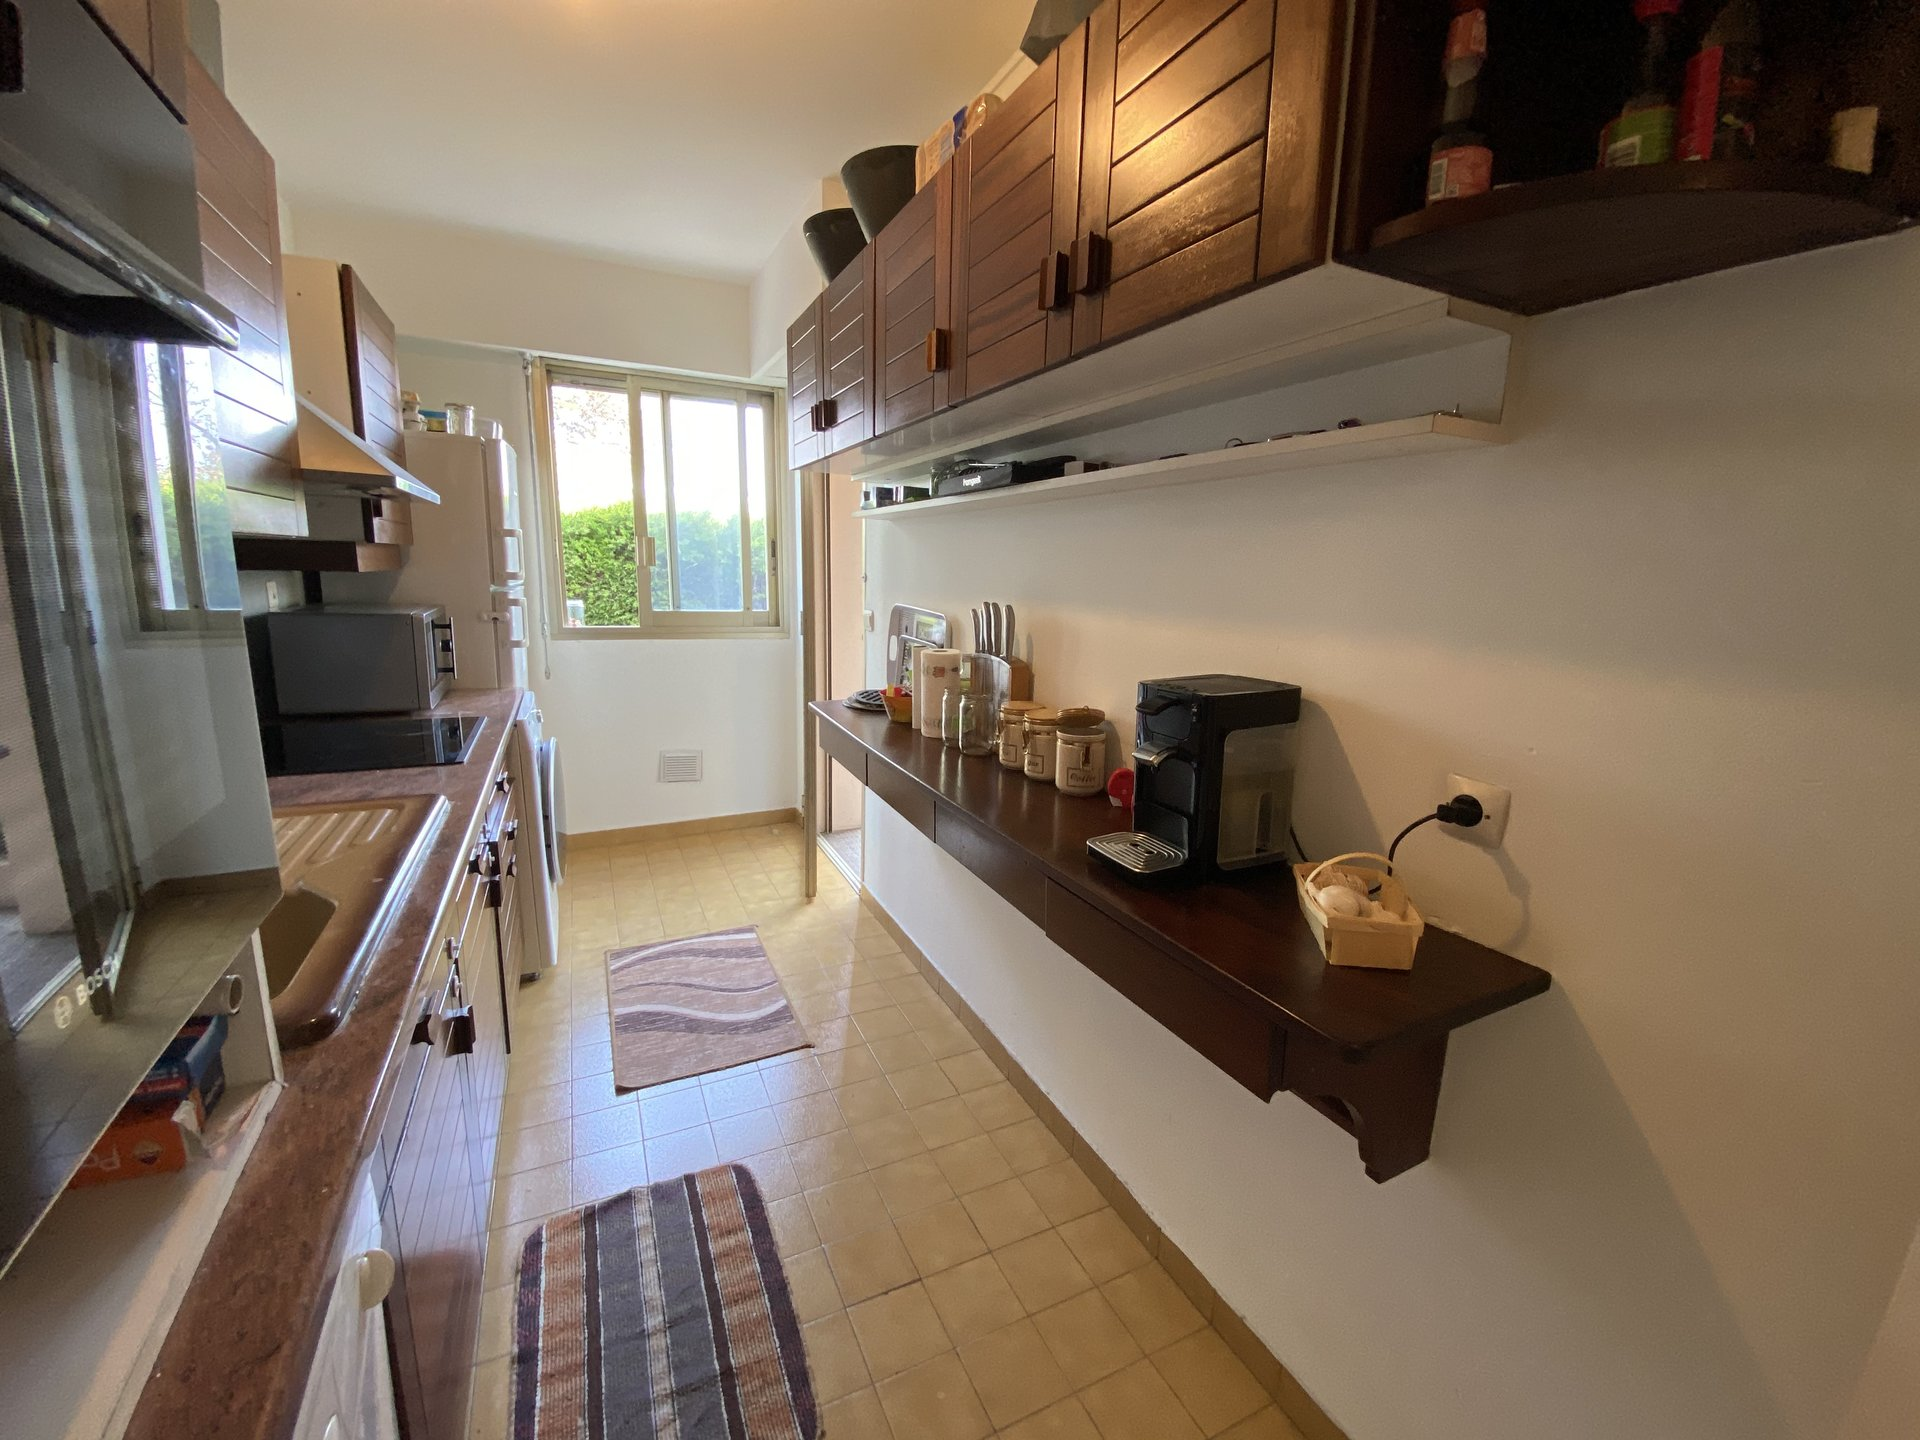 LE CANNET SALE 4 ROOMS ON GROUND FLOOR IN SMALL RESIDENCE